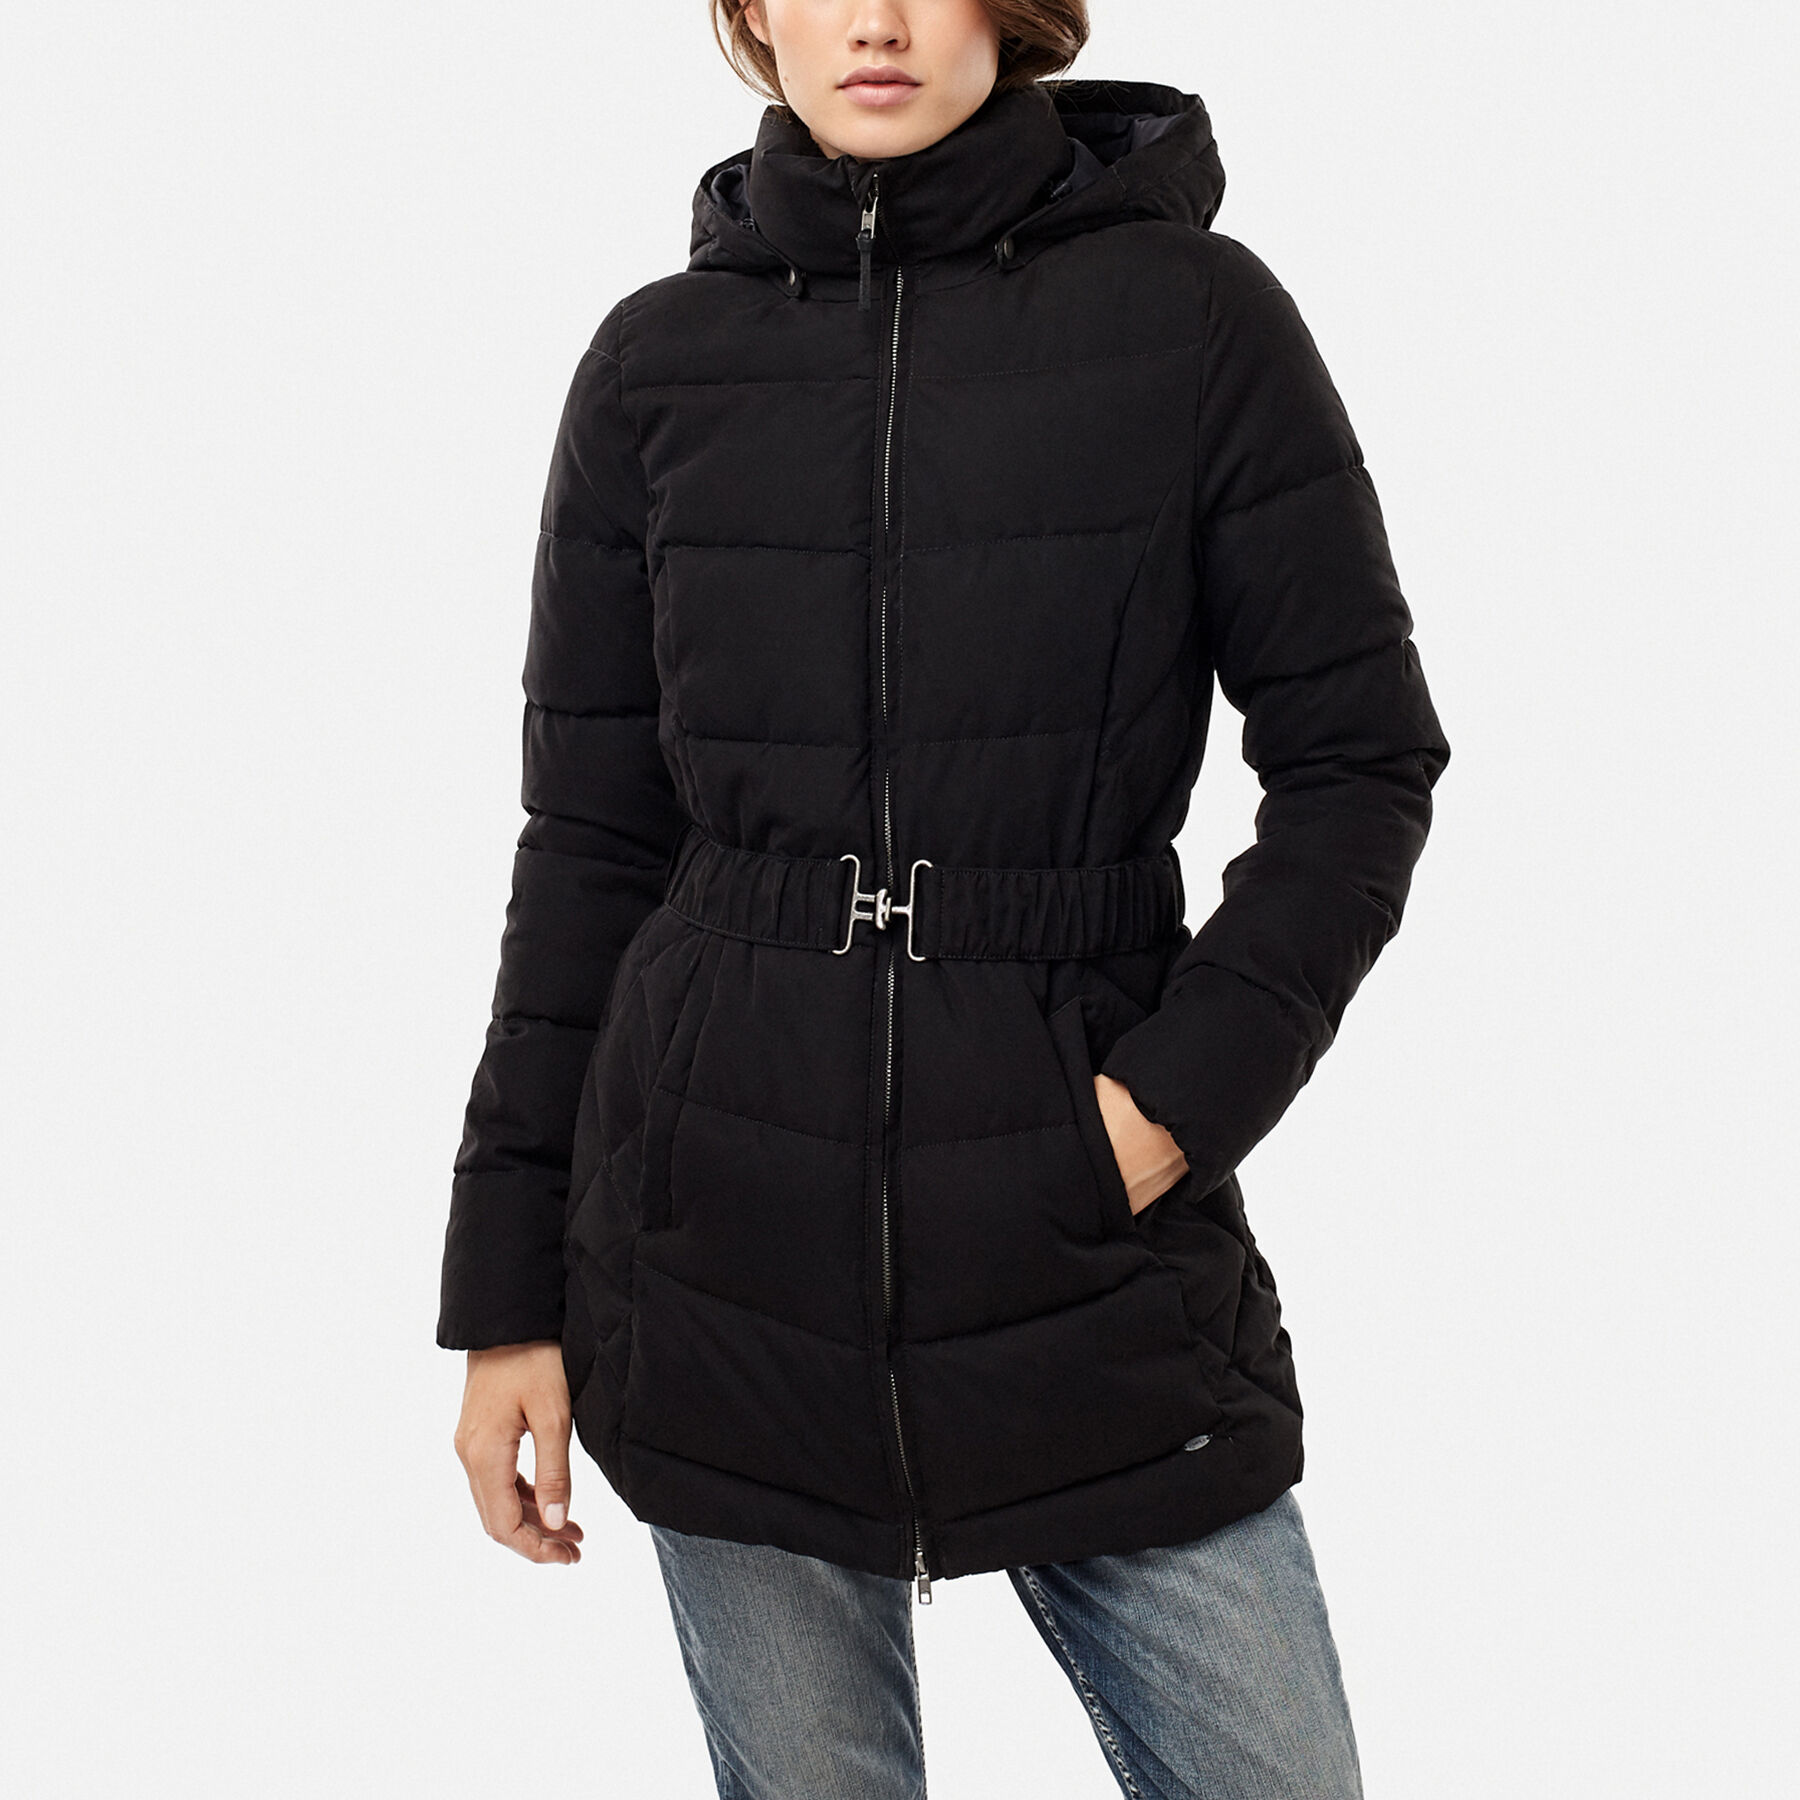 O'neill calexico parka coat ladies